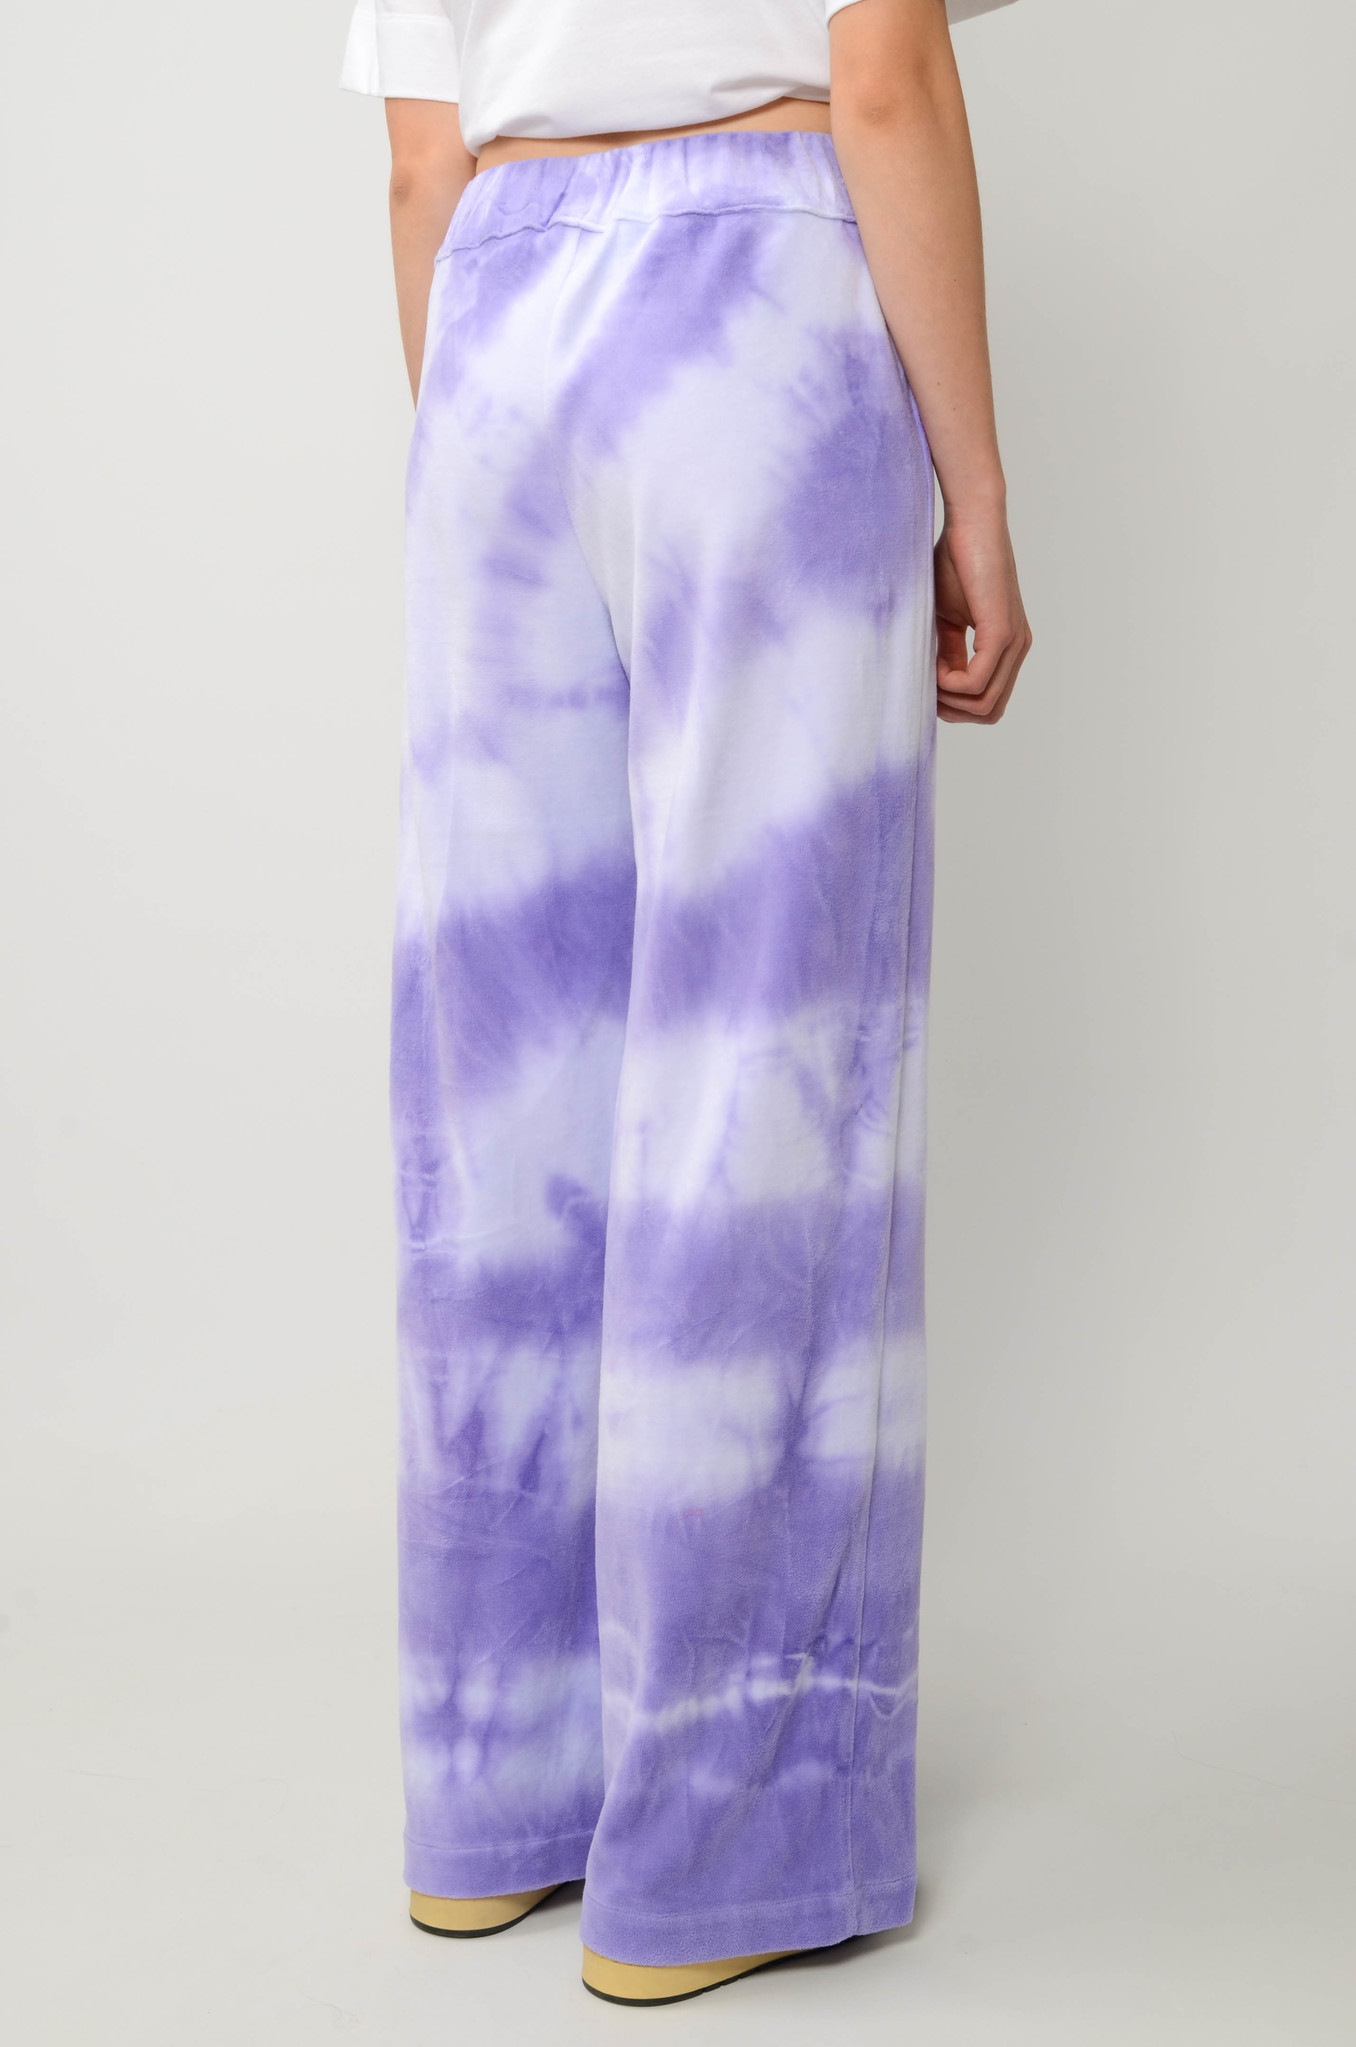 ALOHA PANTS T&D IN LAVENDER-4